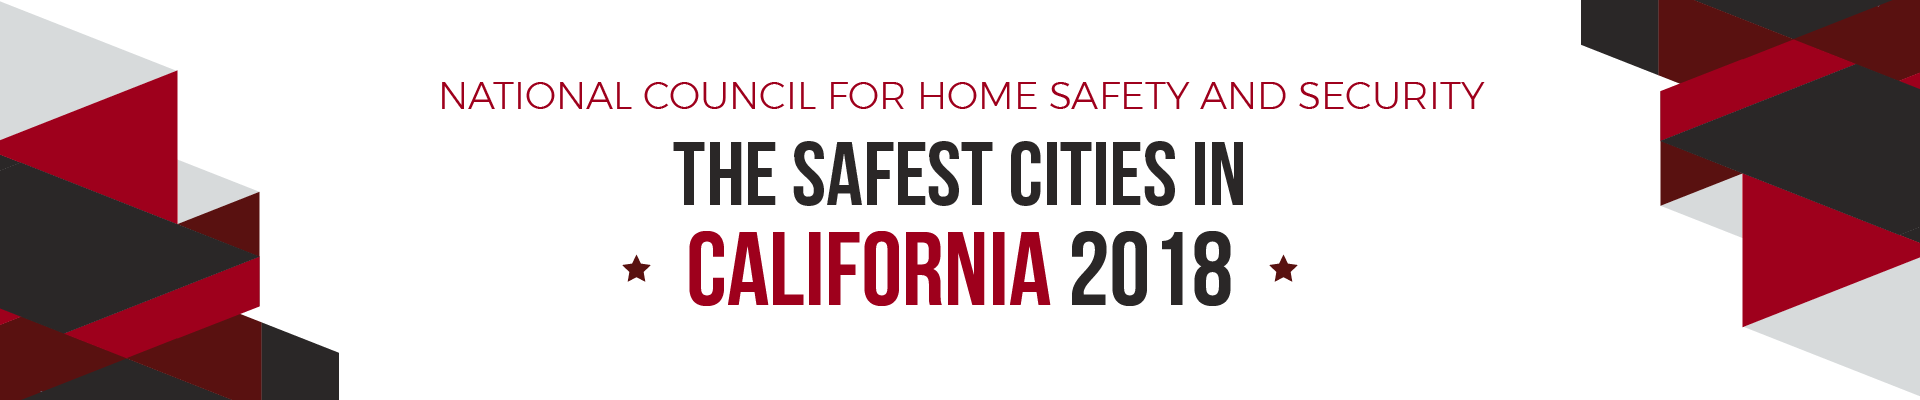 california safe cities 2018